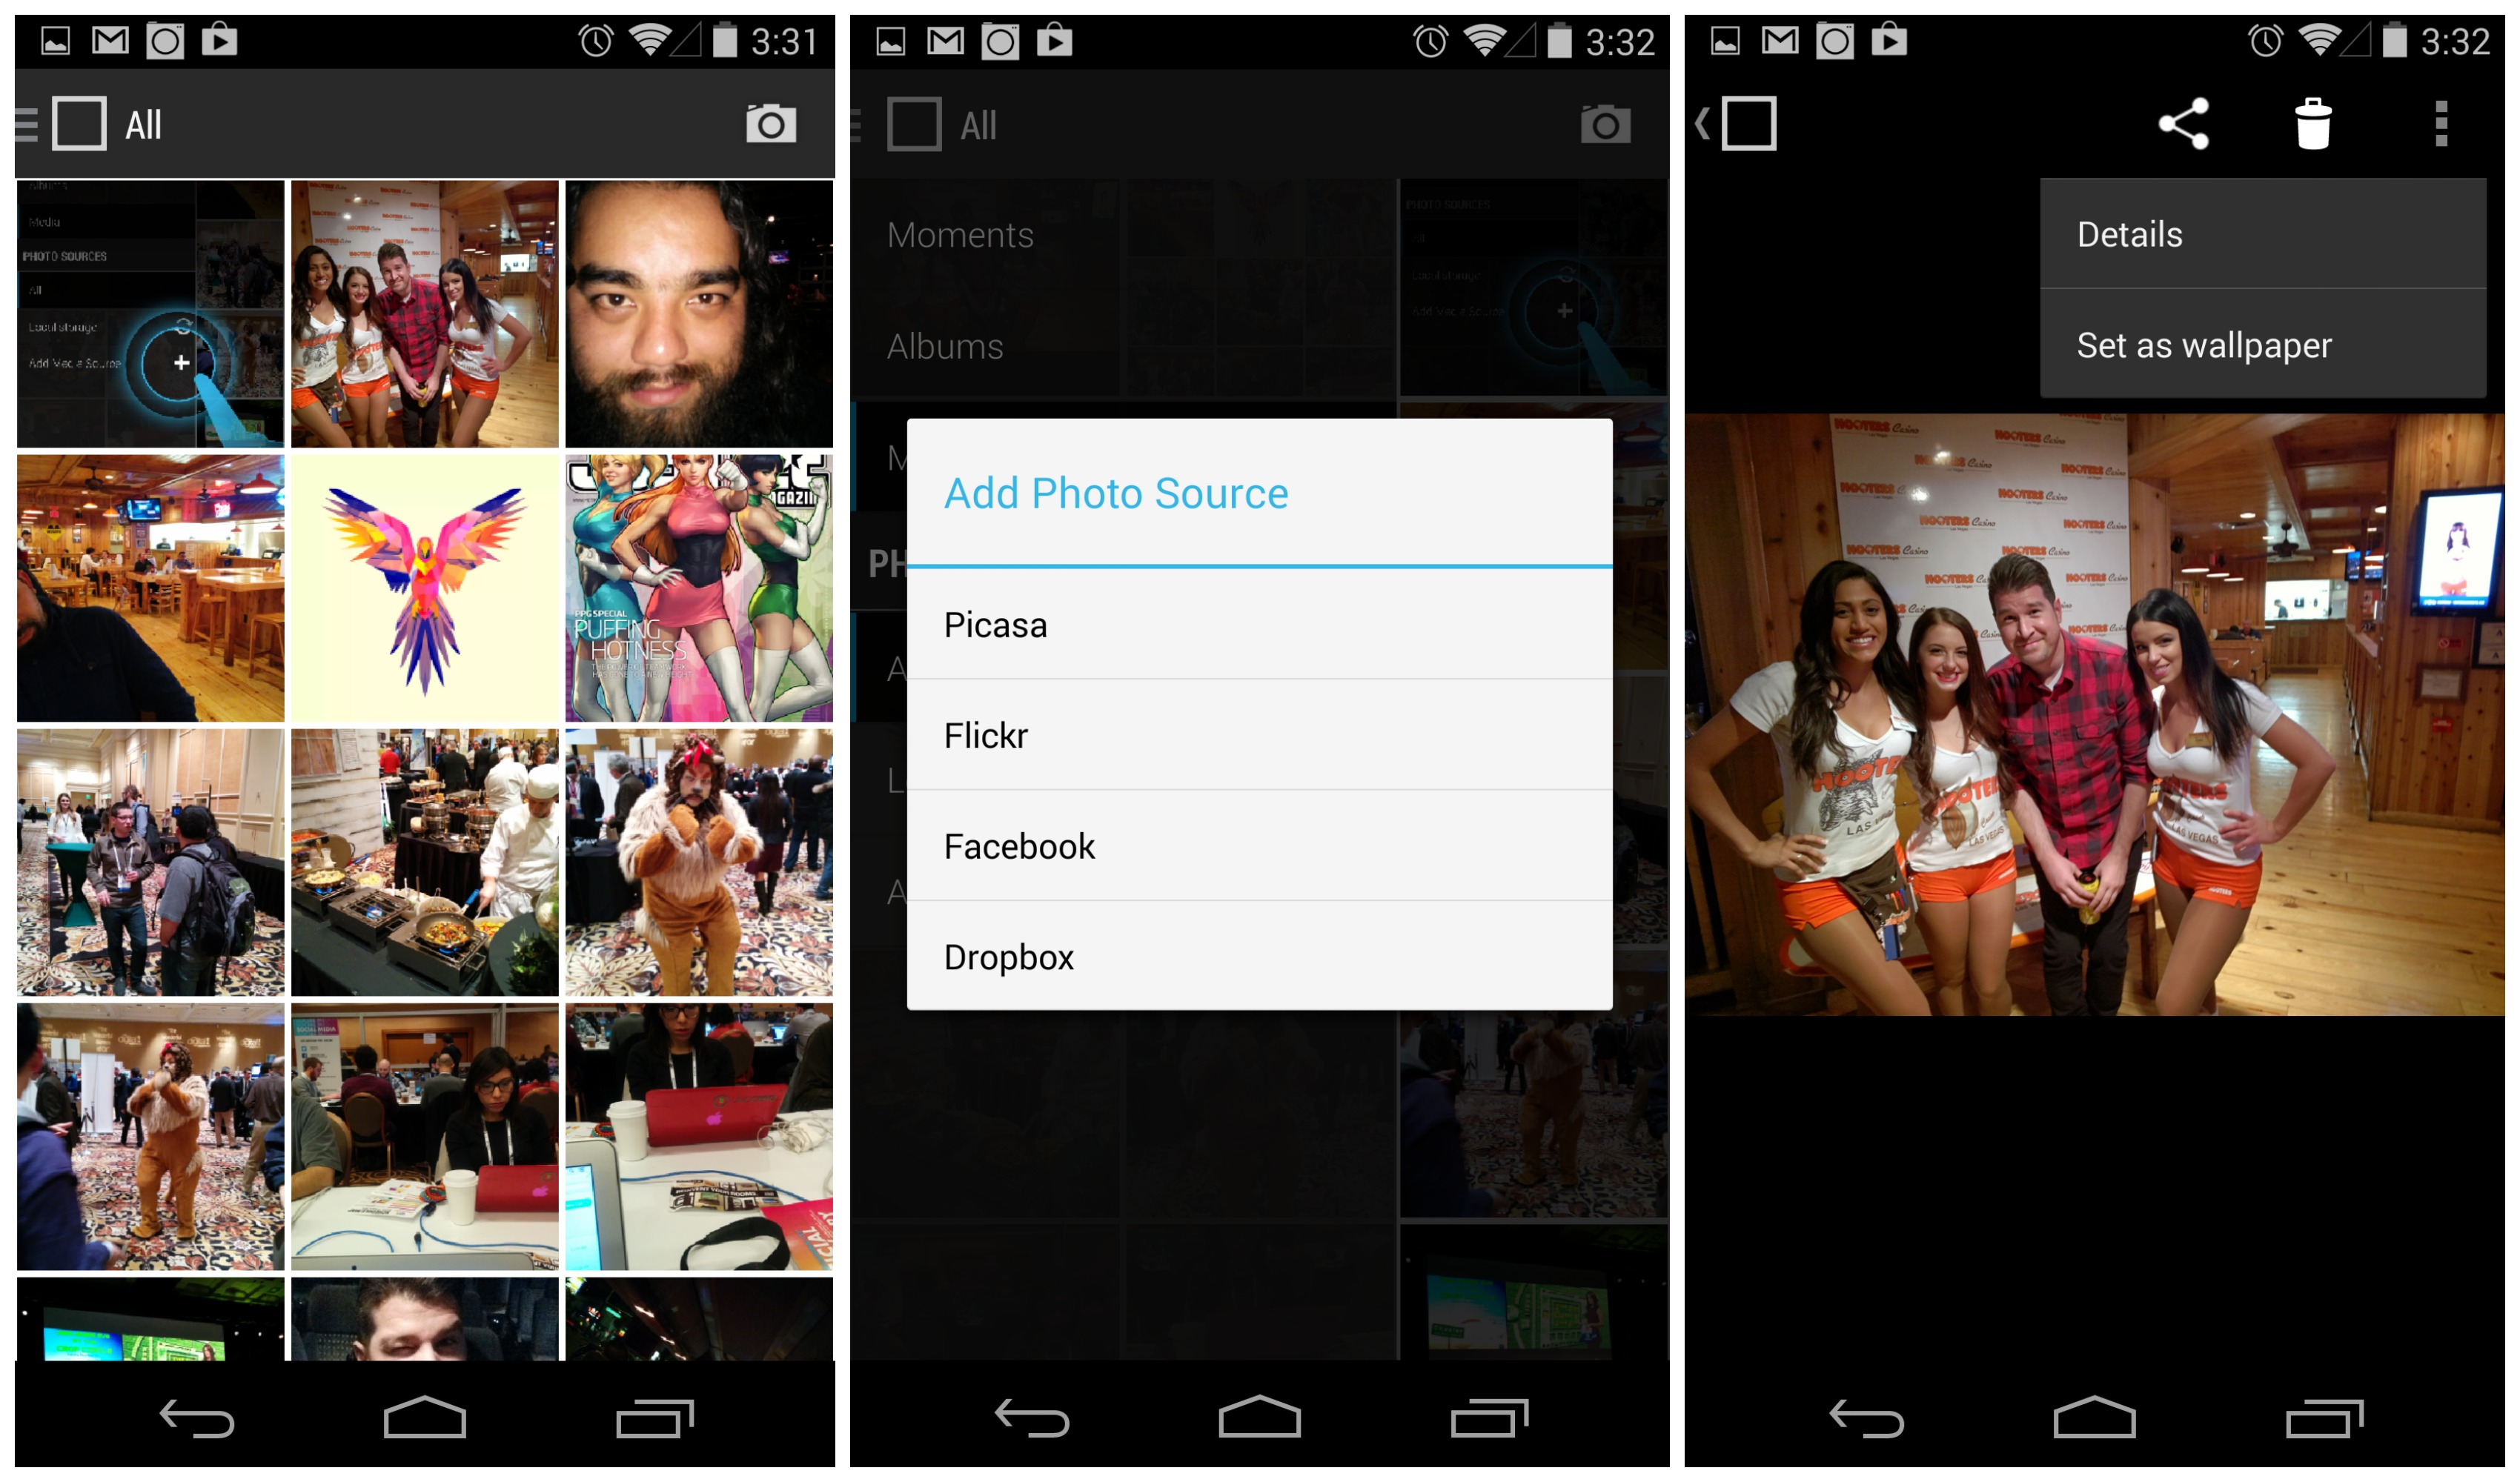 CyanogenMod introduces new GalleryNext app, join the Google+